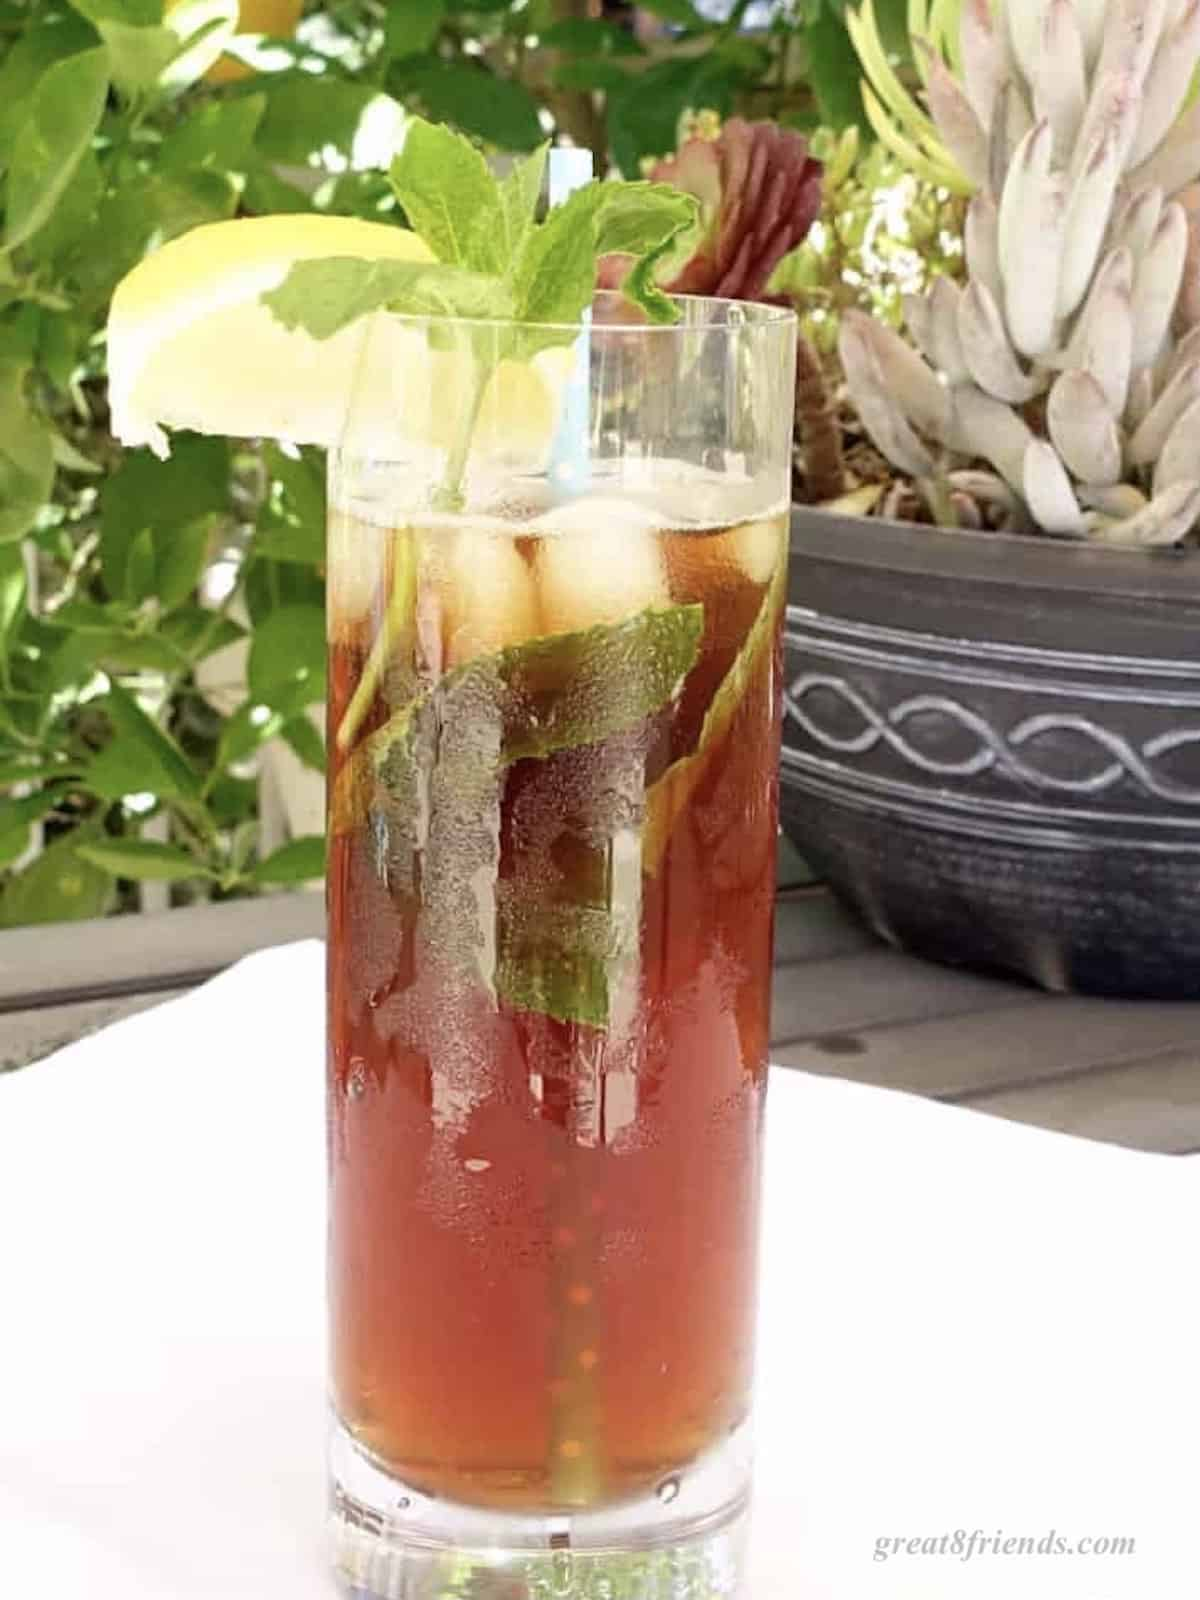 Tall glass of iced tea garnished with a lemon wedge and sprigs of fresh mint.